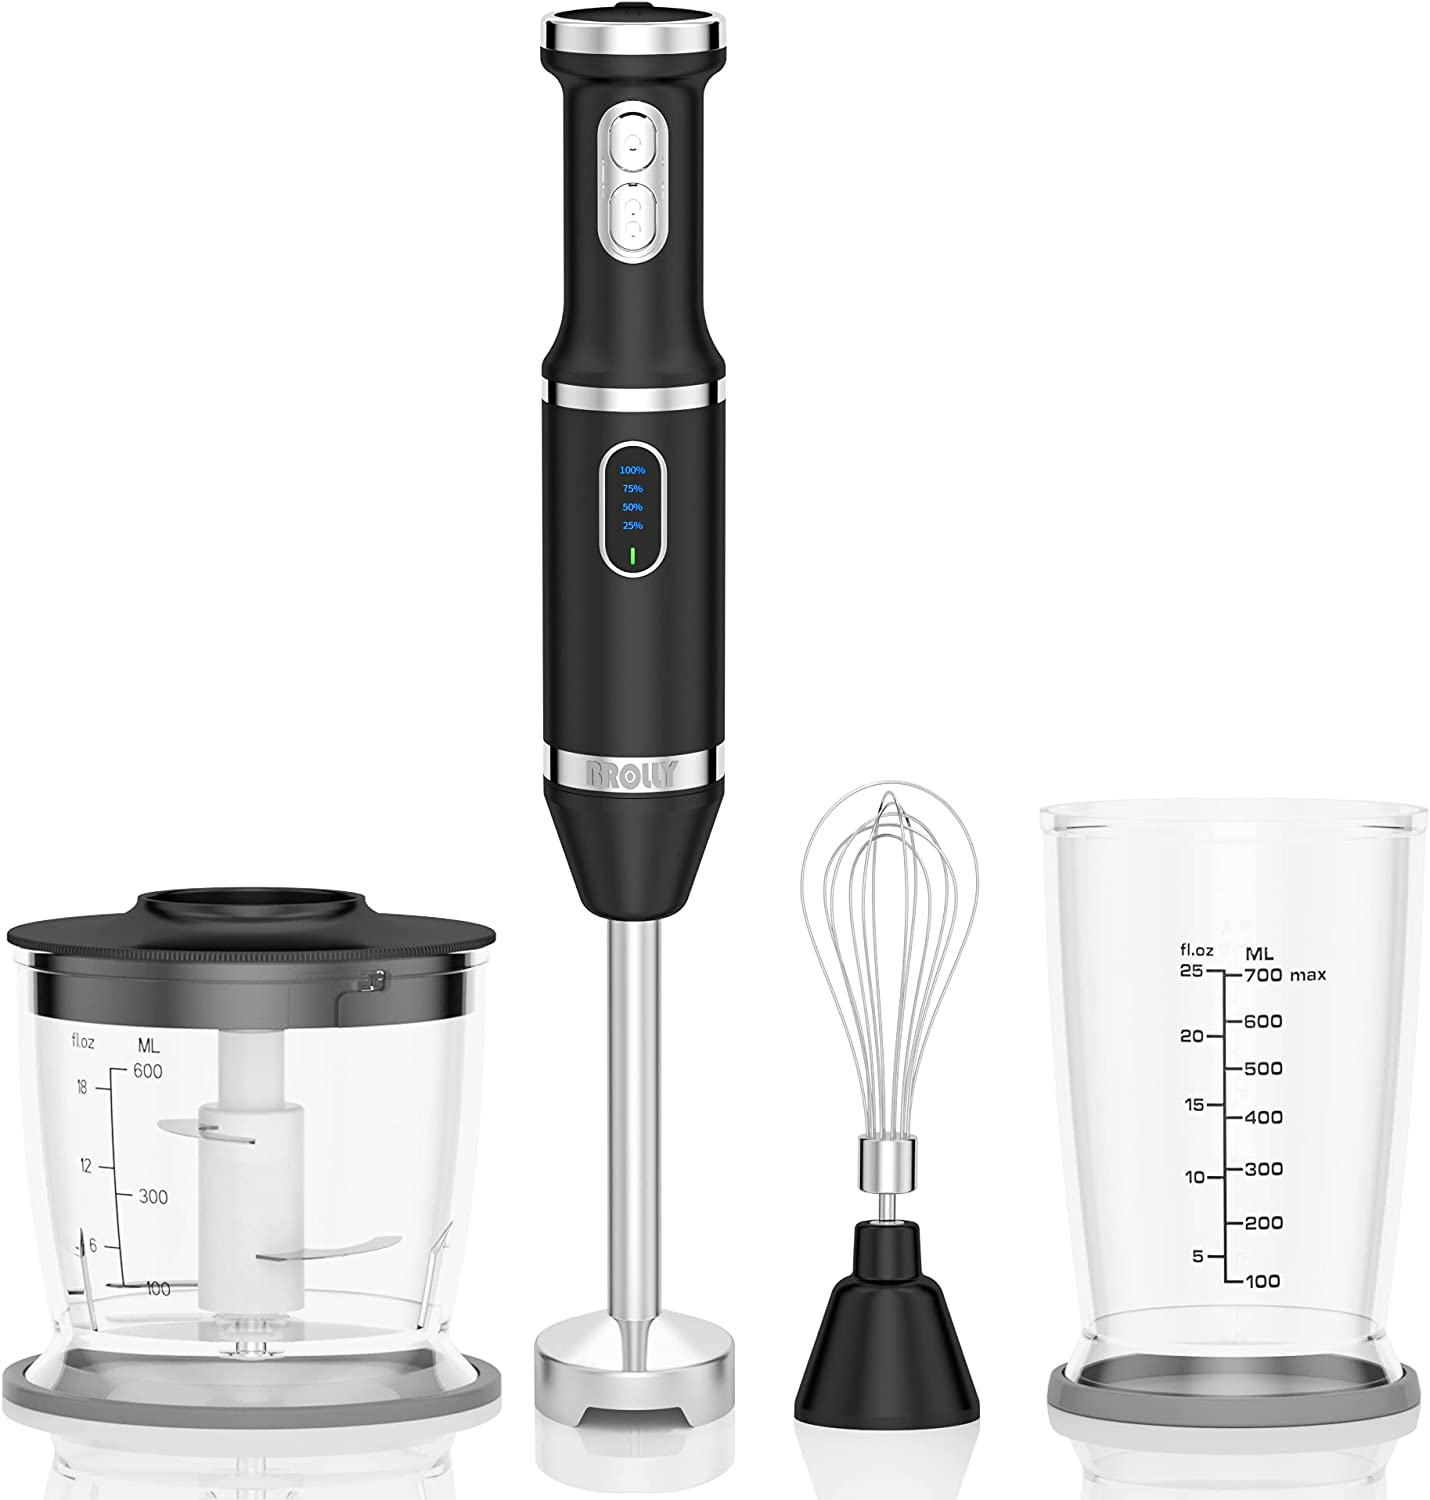 Hand Blender Electric, Immersion Smart Stick Blender Rechargeable with Stainless Steel Blades, Variable Speed Beaker Whisk for Infant Food Smoothies Puree Sauces Soups (Black)